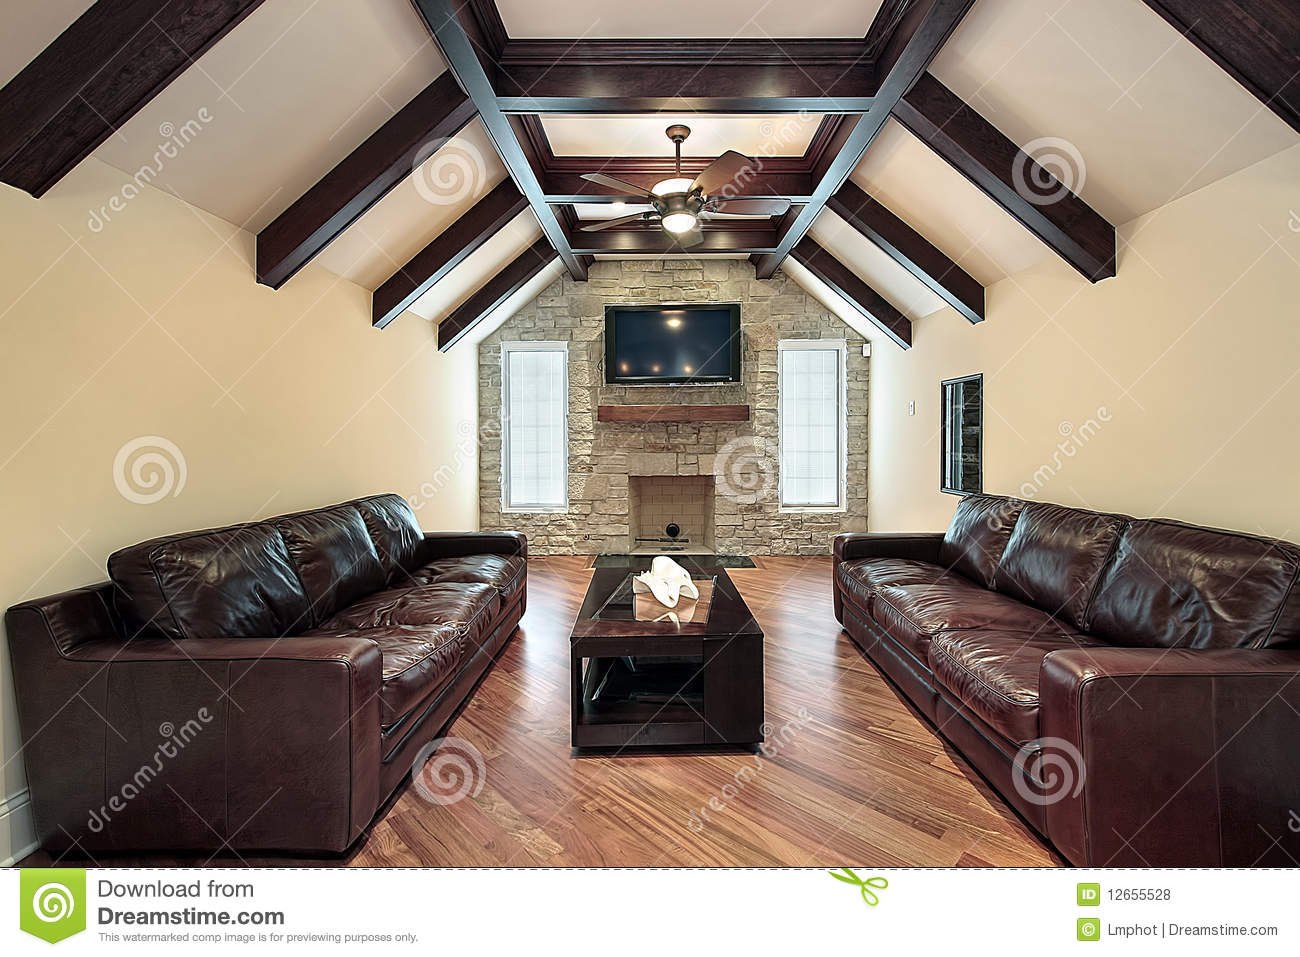 Celing Window Family Room With Wood Ceiling Beams Royalty Free Stock